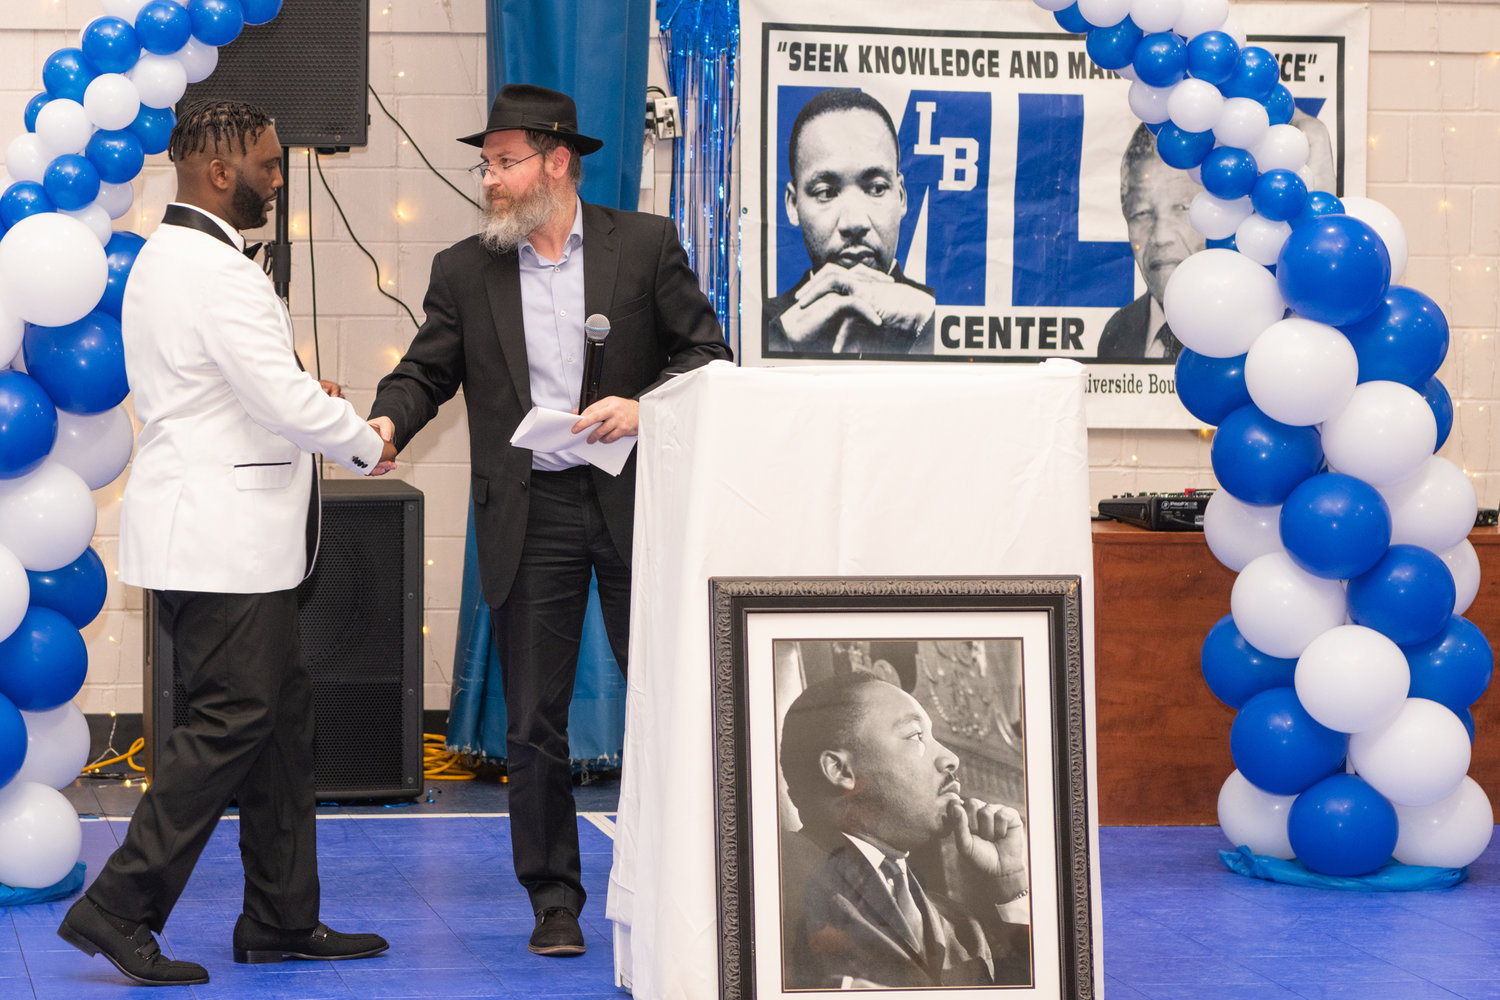 Hodge thanked Rabbi Eli Goodman, of the Chabad of the Beaches, for his speech during the MLK Center's commemorative program.